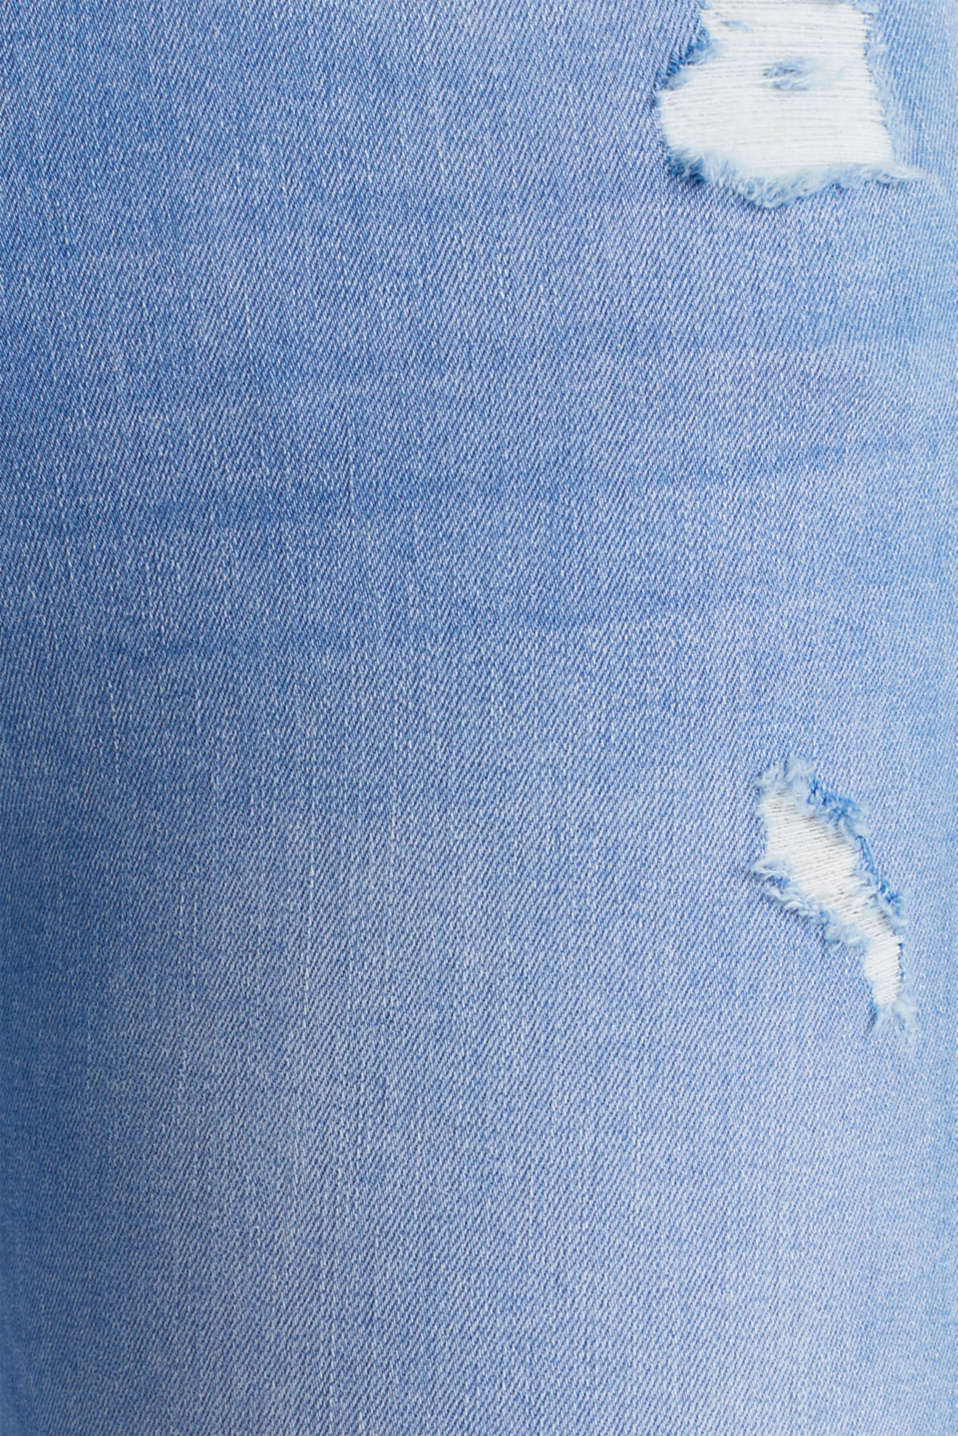 Ankle-length distressed jeans, BRIGHT BLUE, detail image number 4